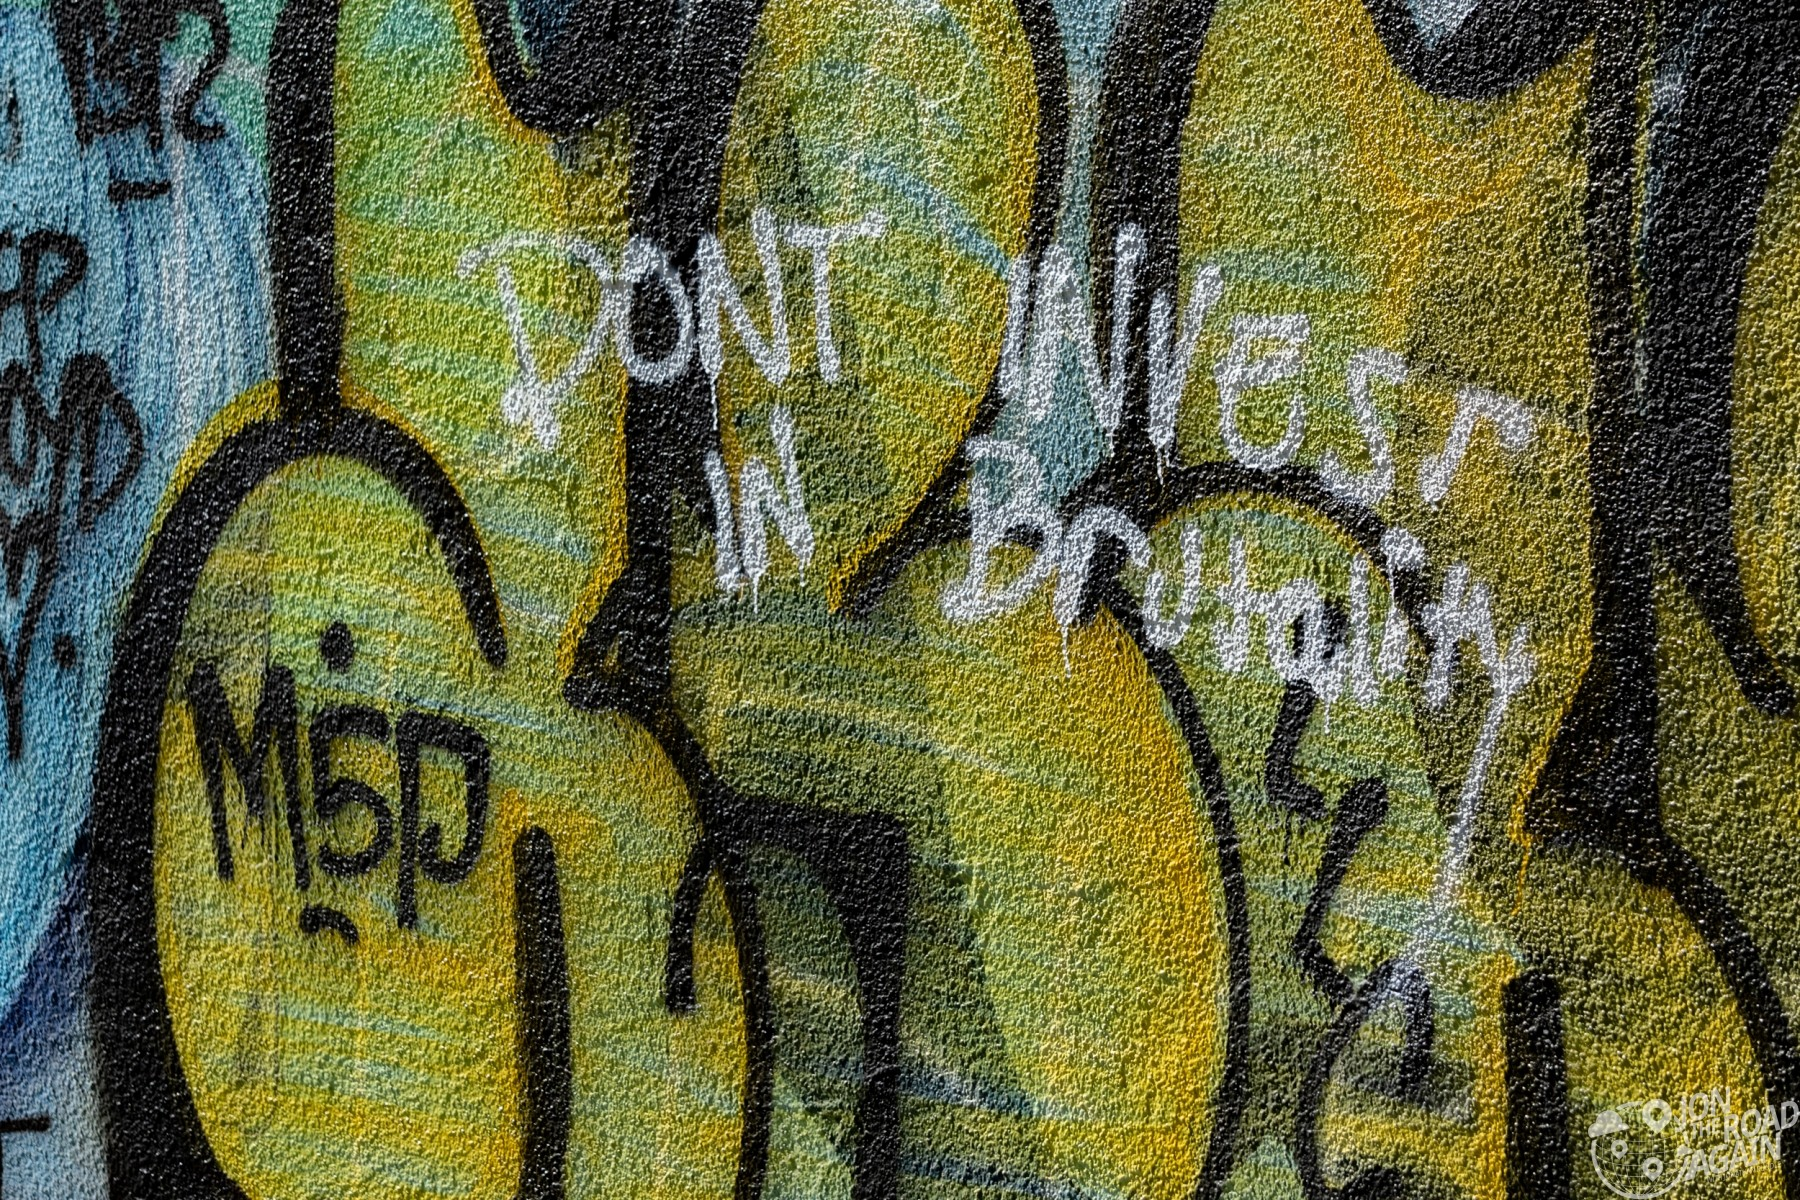 Don't Invest in Brutality graffiti